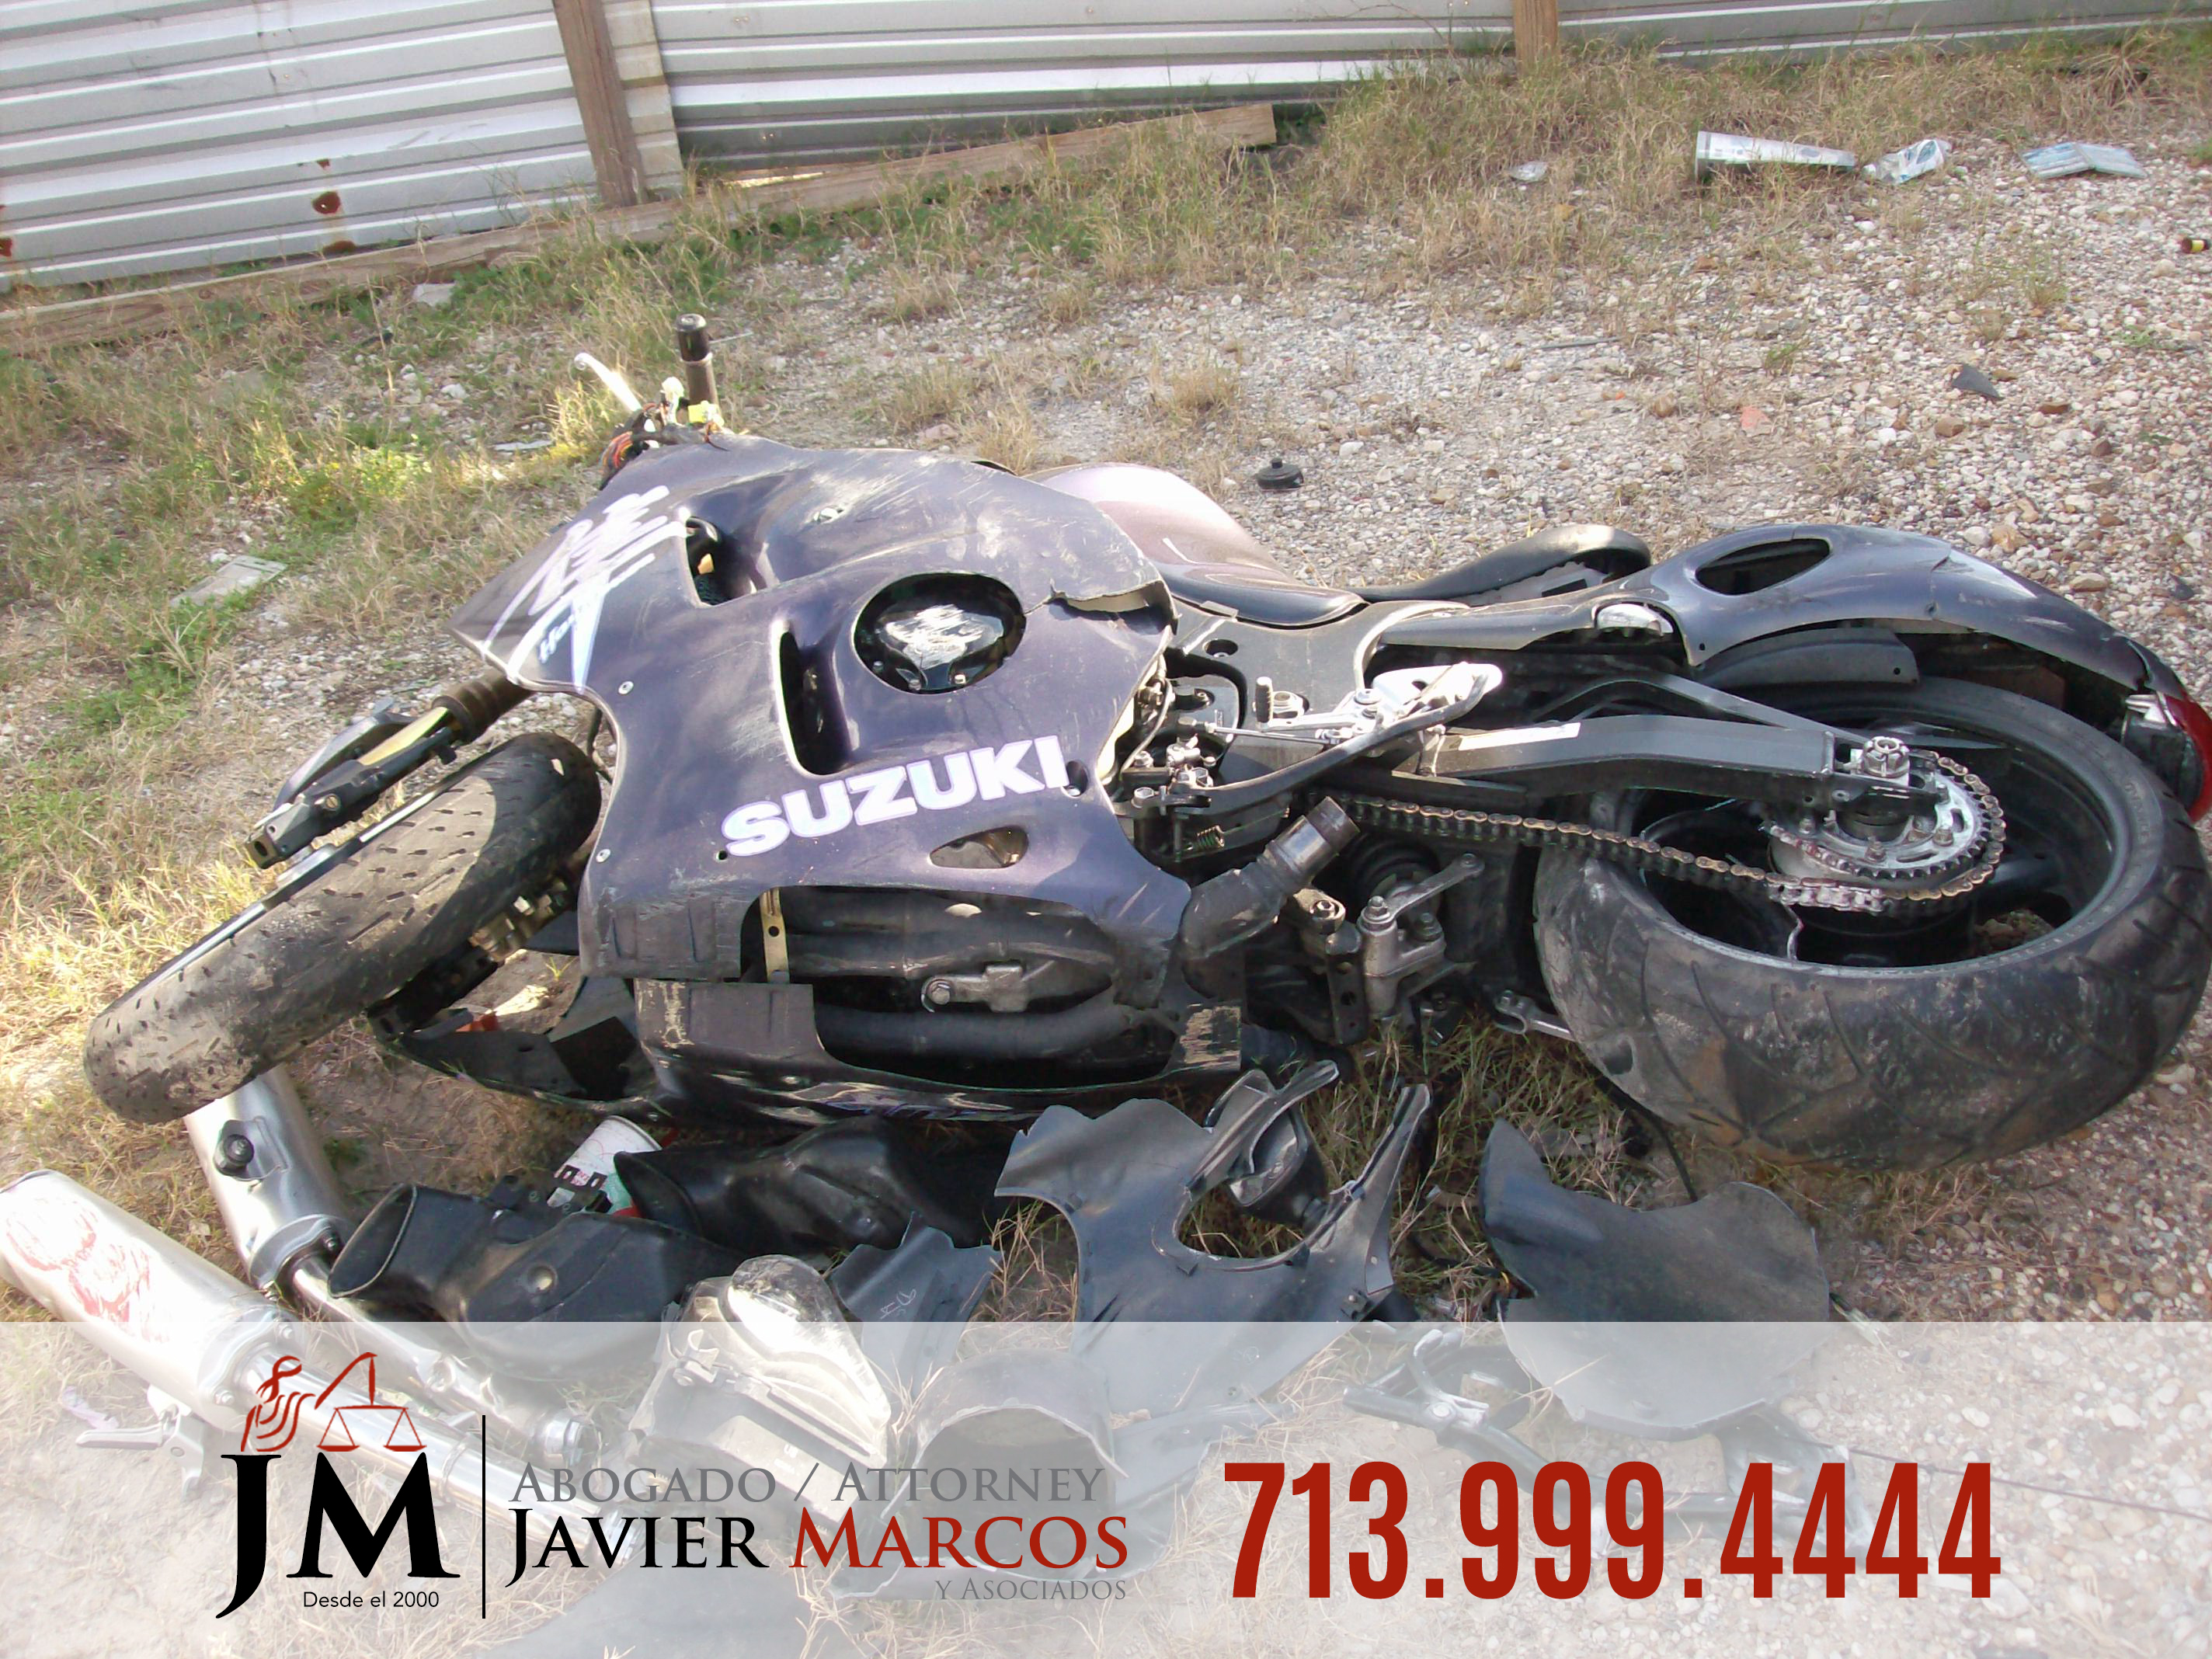 Motorcycle Accident Attorney   Attorney Javier Marcos   713.999.4444